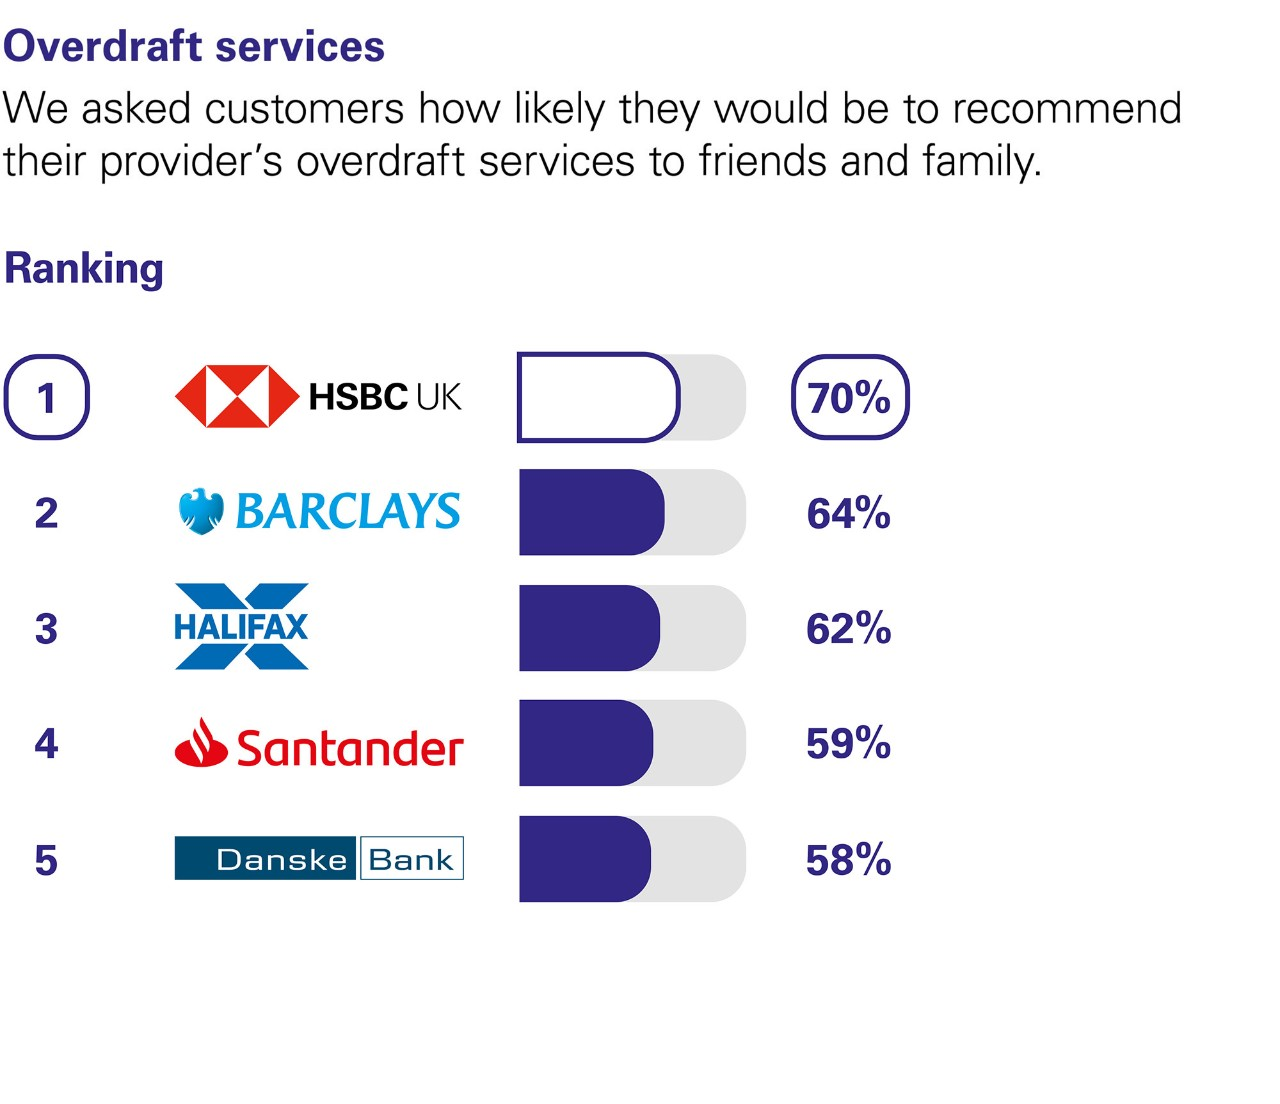 Overdraft services. We asked customers how likely they would be to recommend their provider's overdraft services to friends and family. Ranking: 1 HSBC UK  70%. 2 Barclays 64%.  3 Halifax 62%. 4 Santander 59%. 5 Danske Bank 58%.